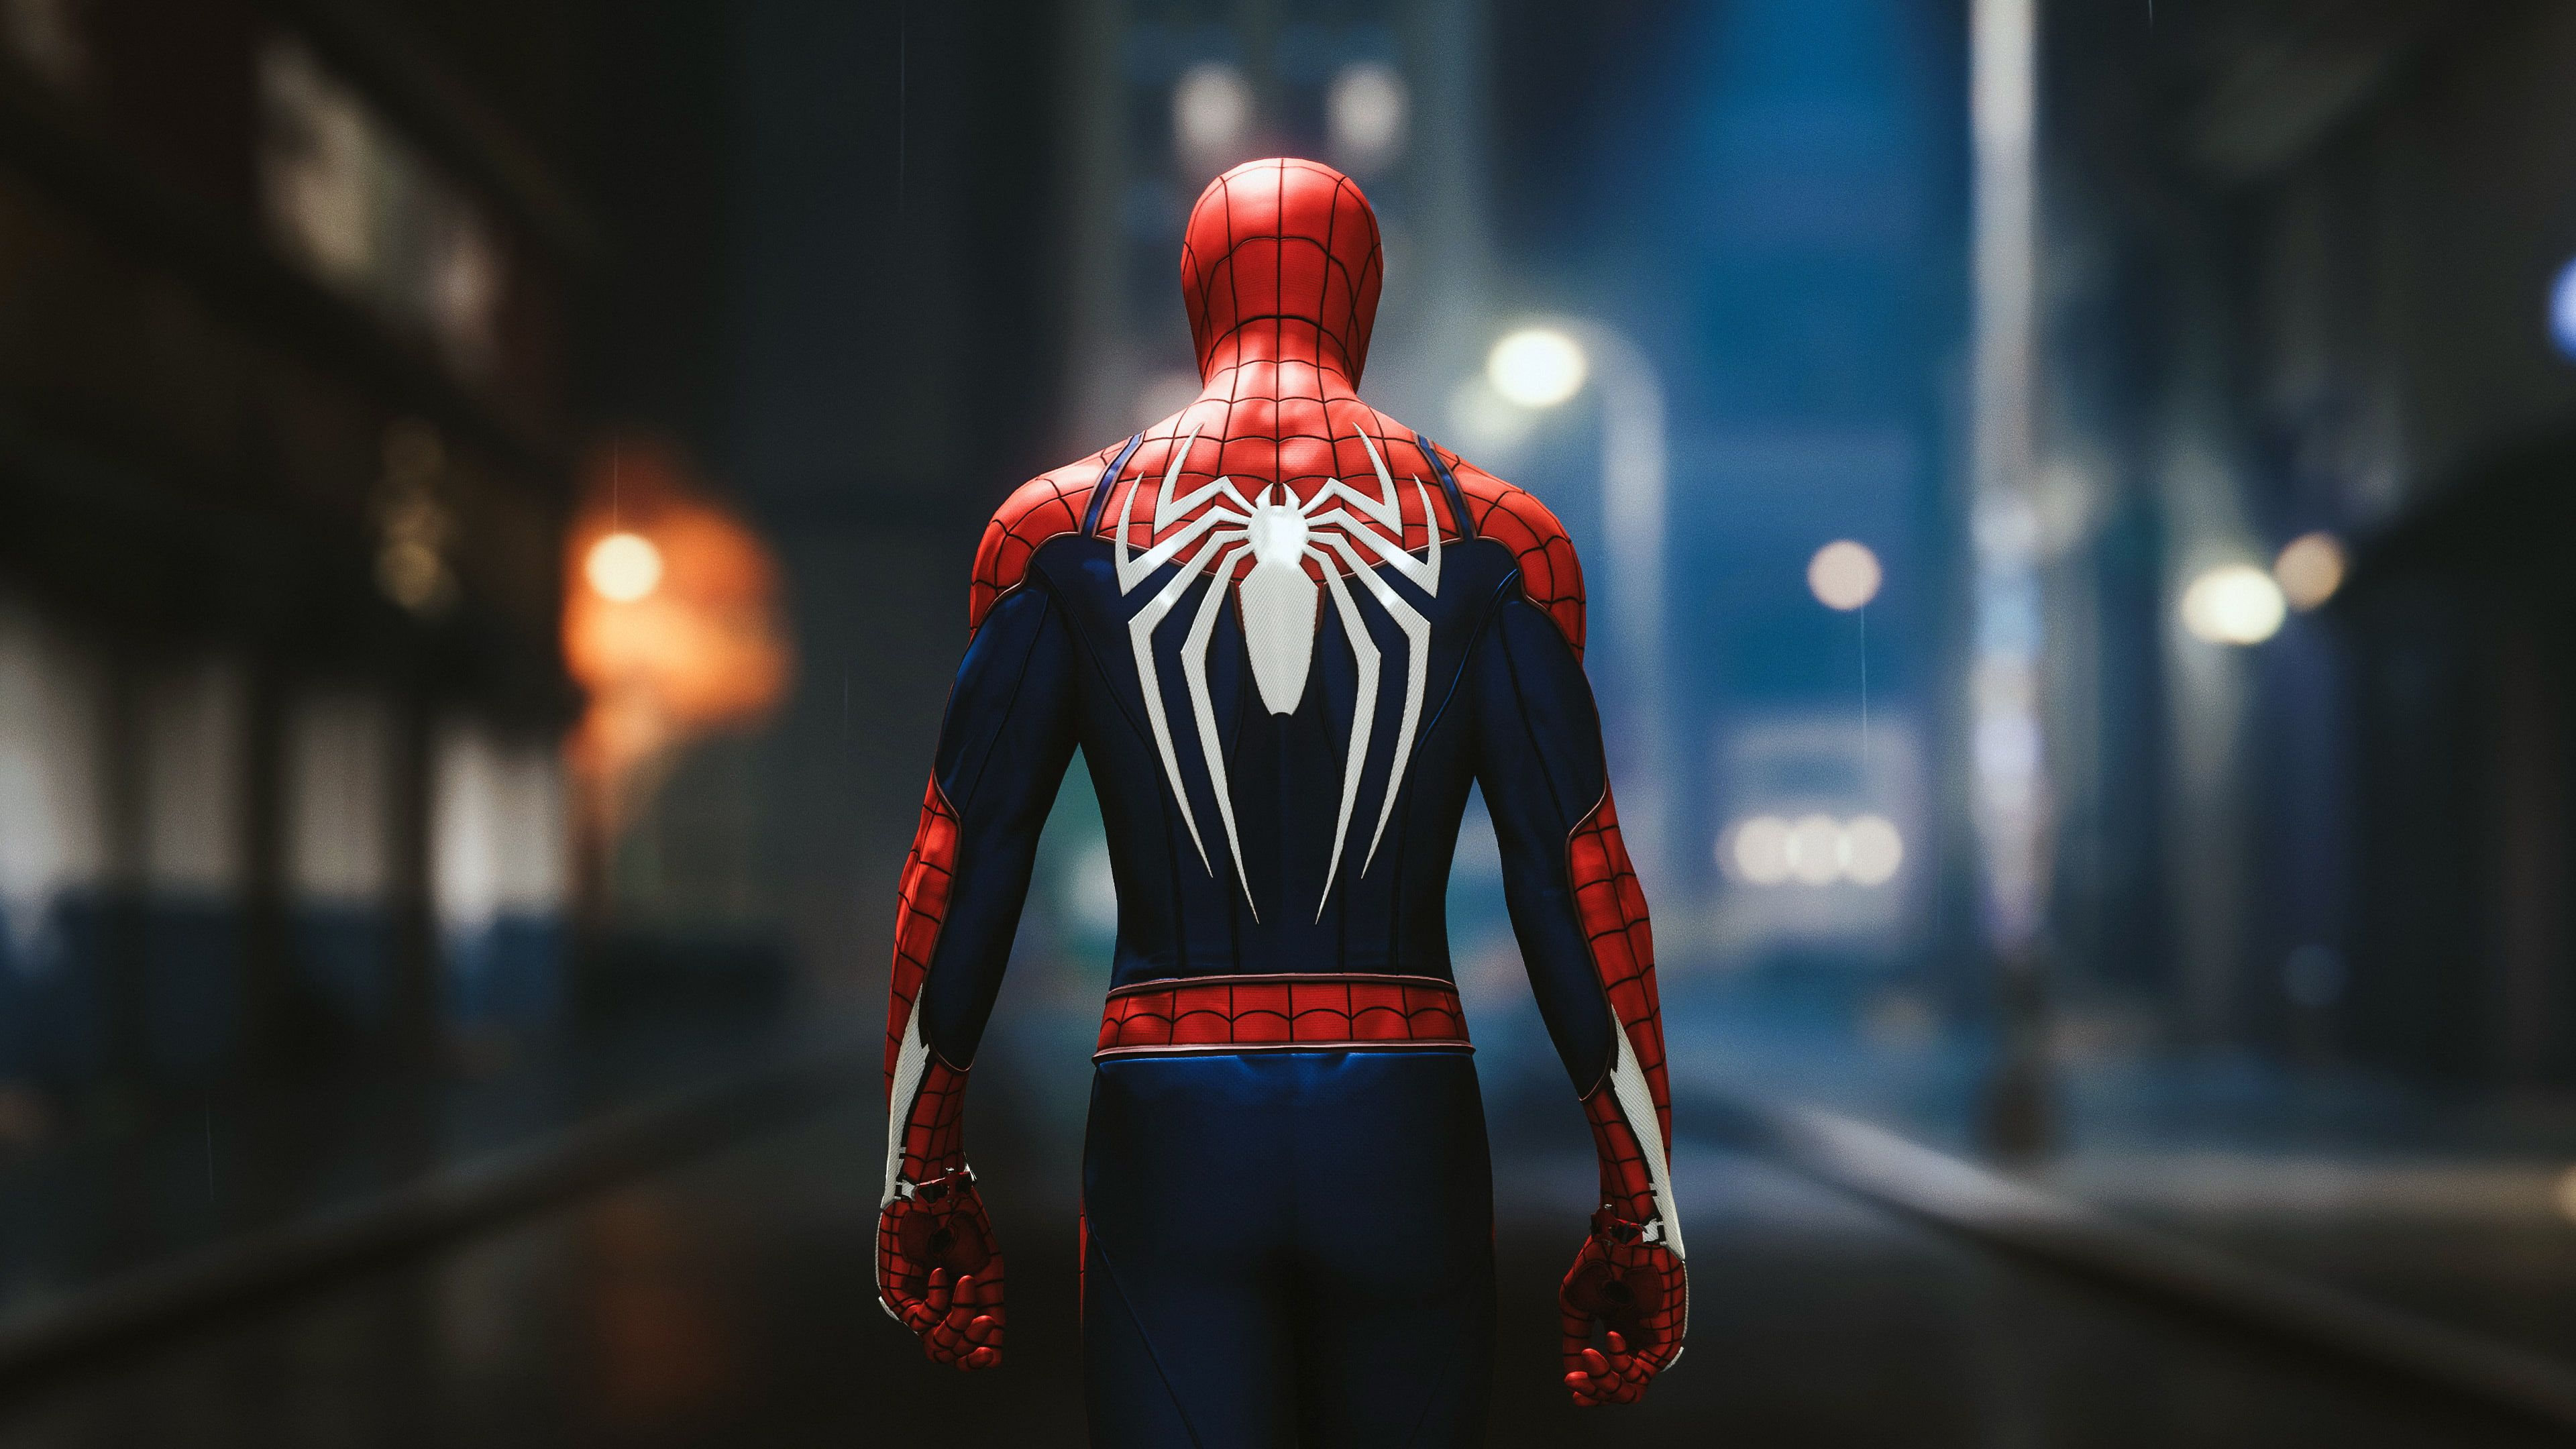 Spider Man Spider Video Games Superhero Marvel Comics Rear View 4k Wallpaper Hdwallpap In 2020 Superhero Wallpaper Superhero Wallpaper Hd Spiderman Ps4 Wallpaper